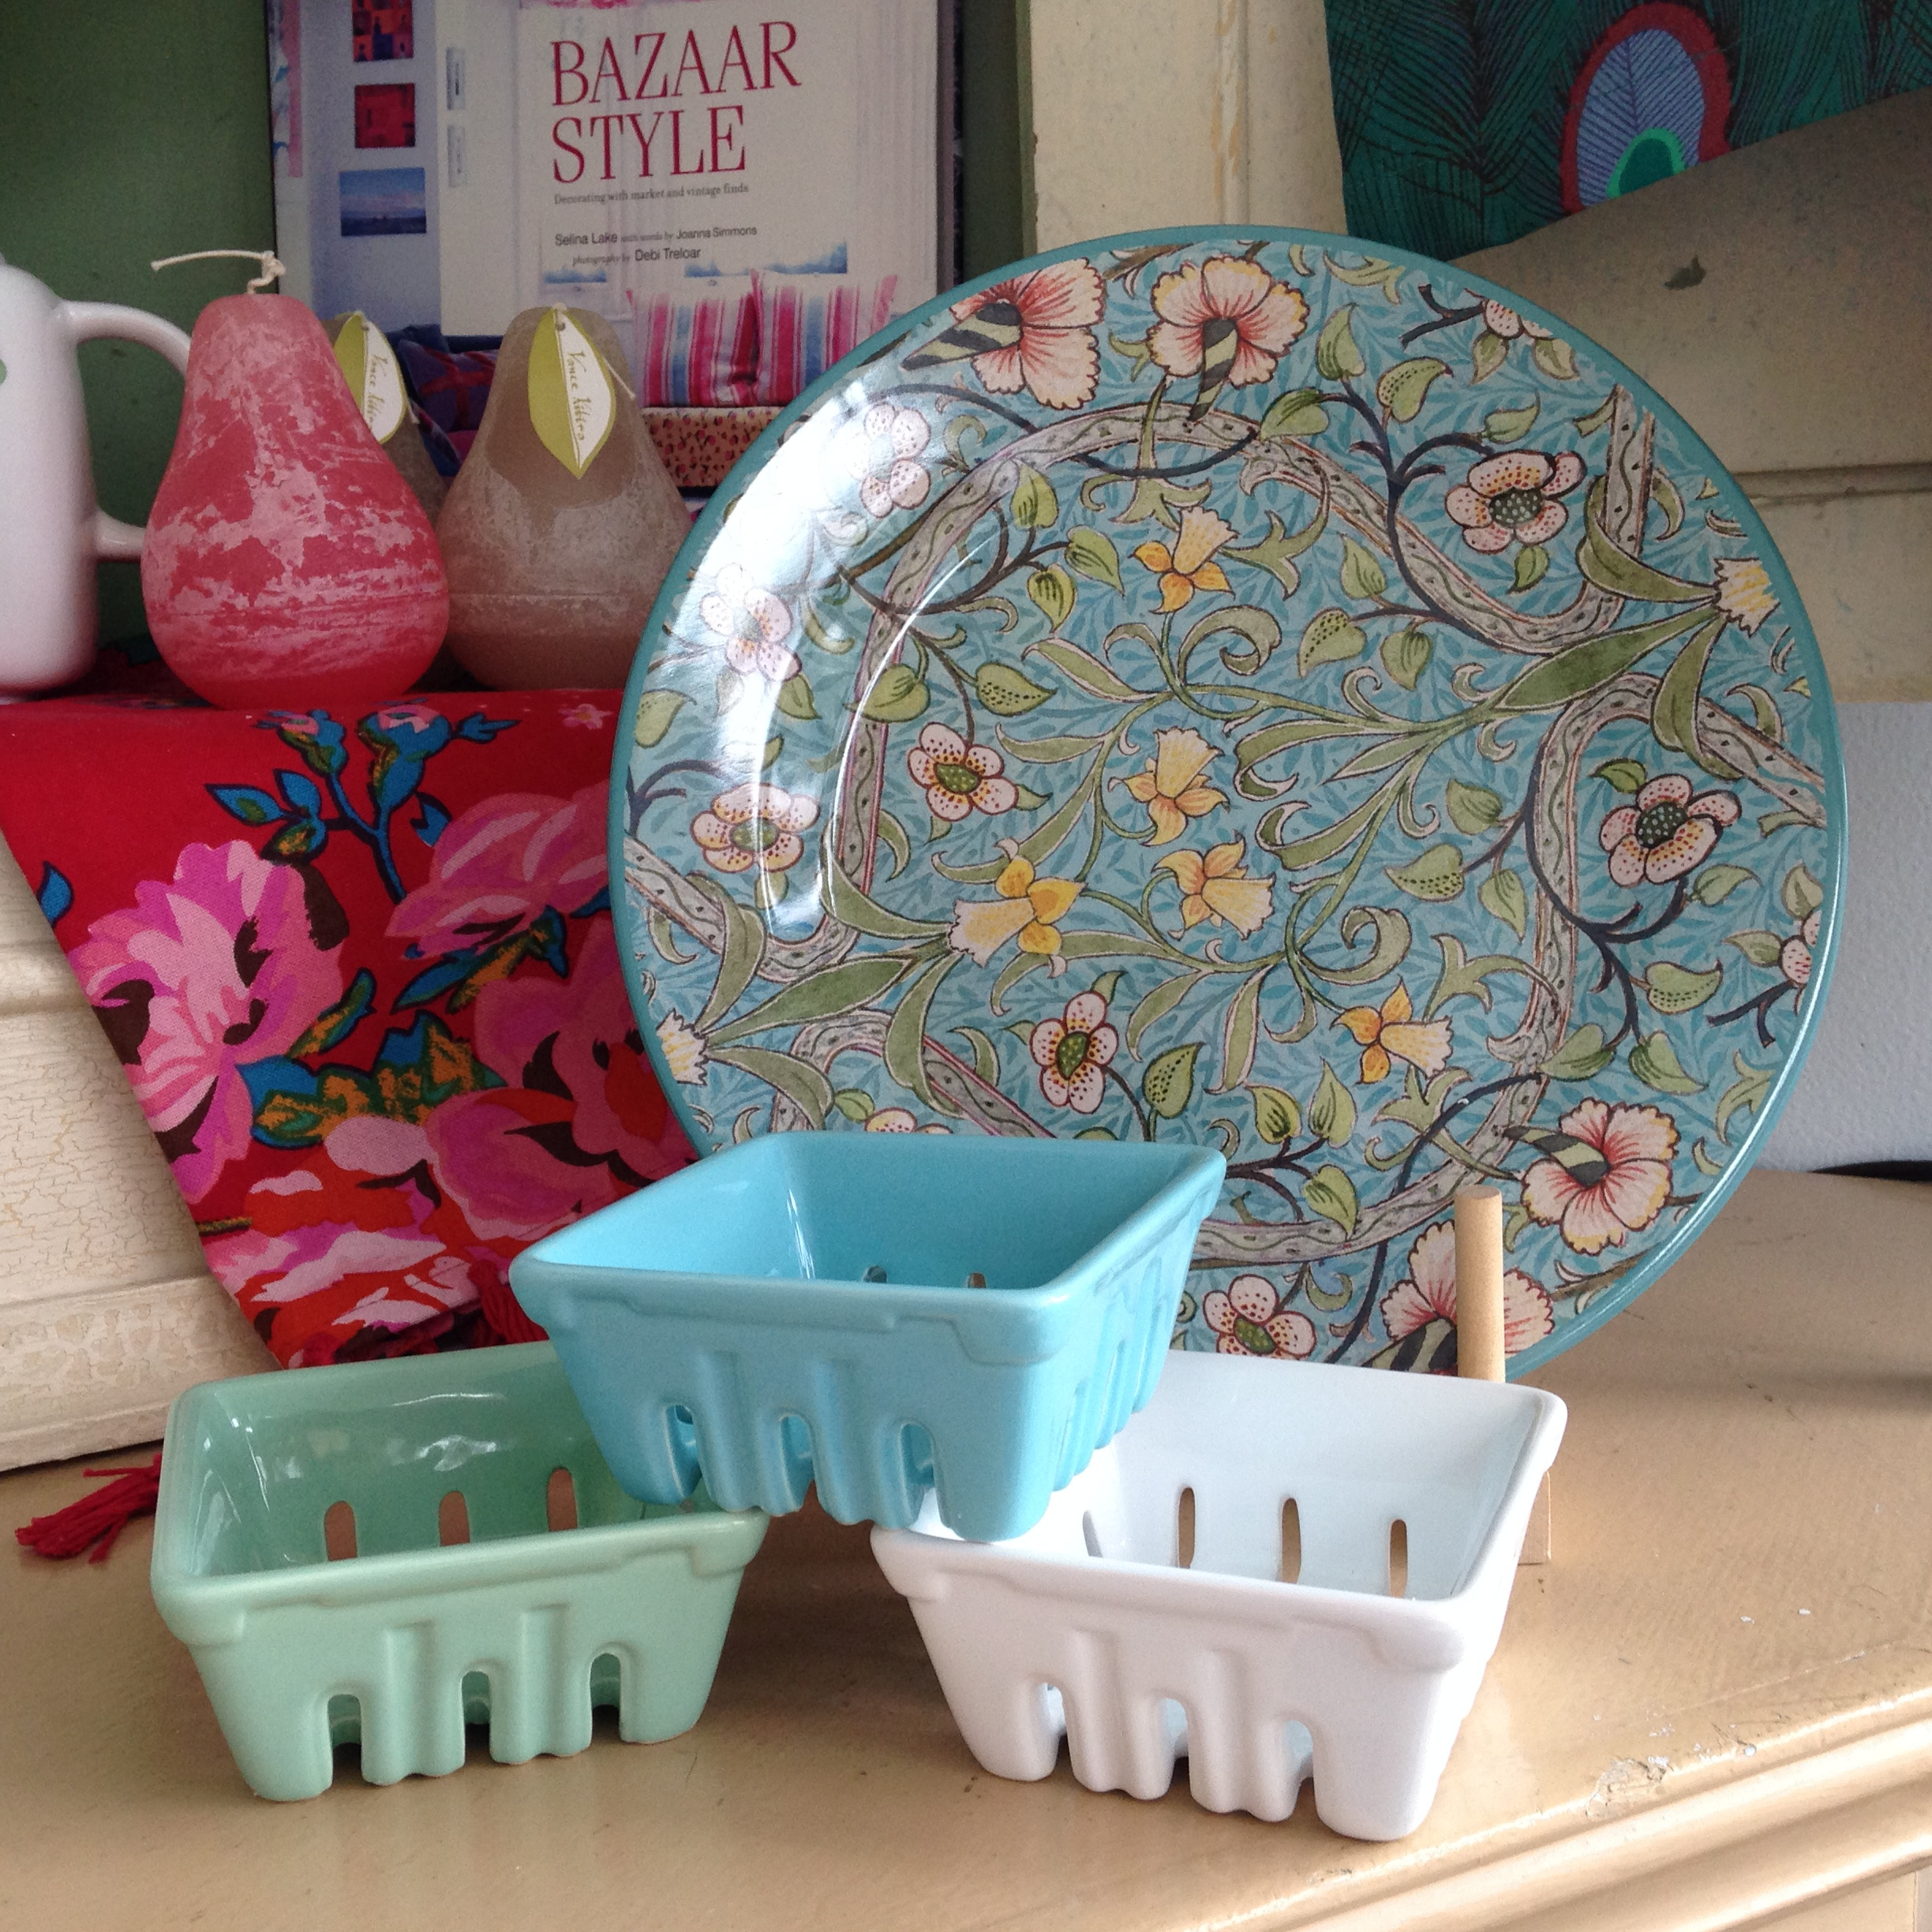 Flowered patterned tin plates + berry containers in green, blue and white